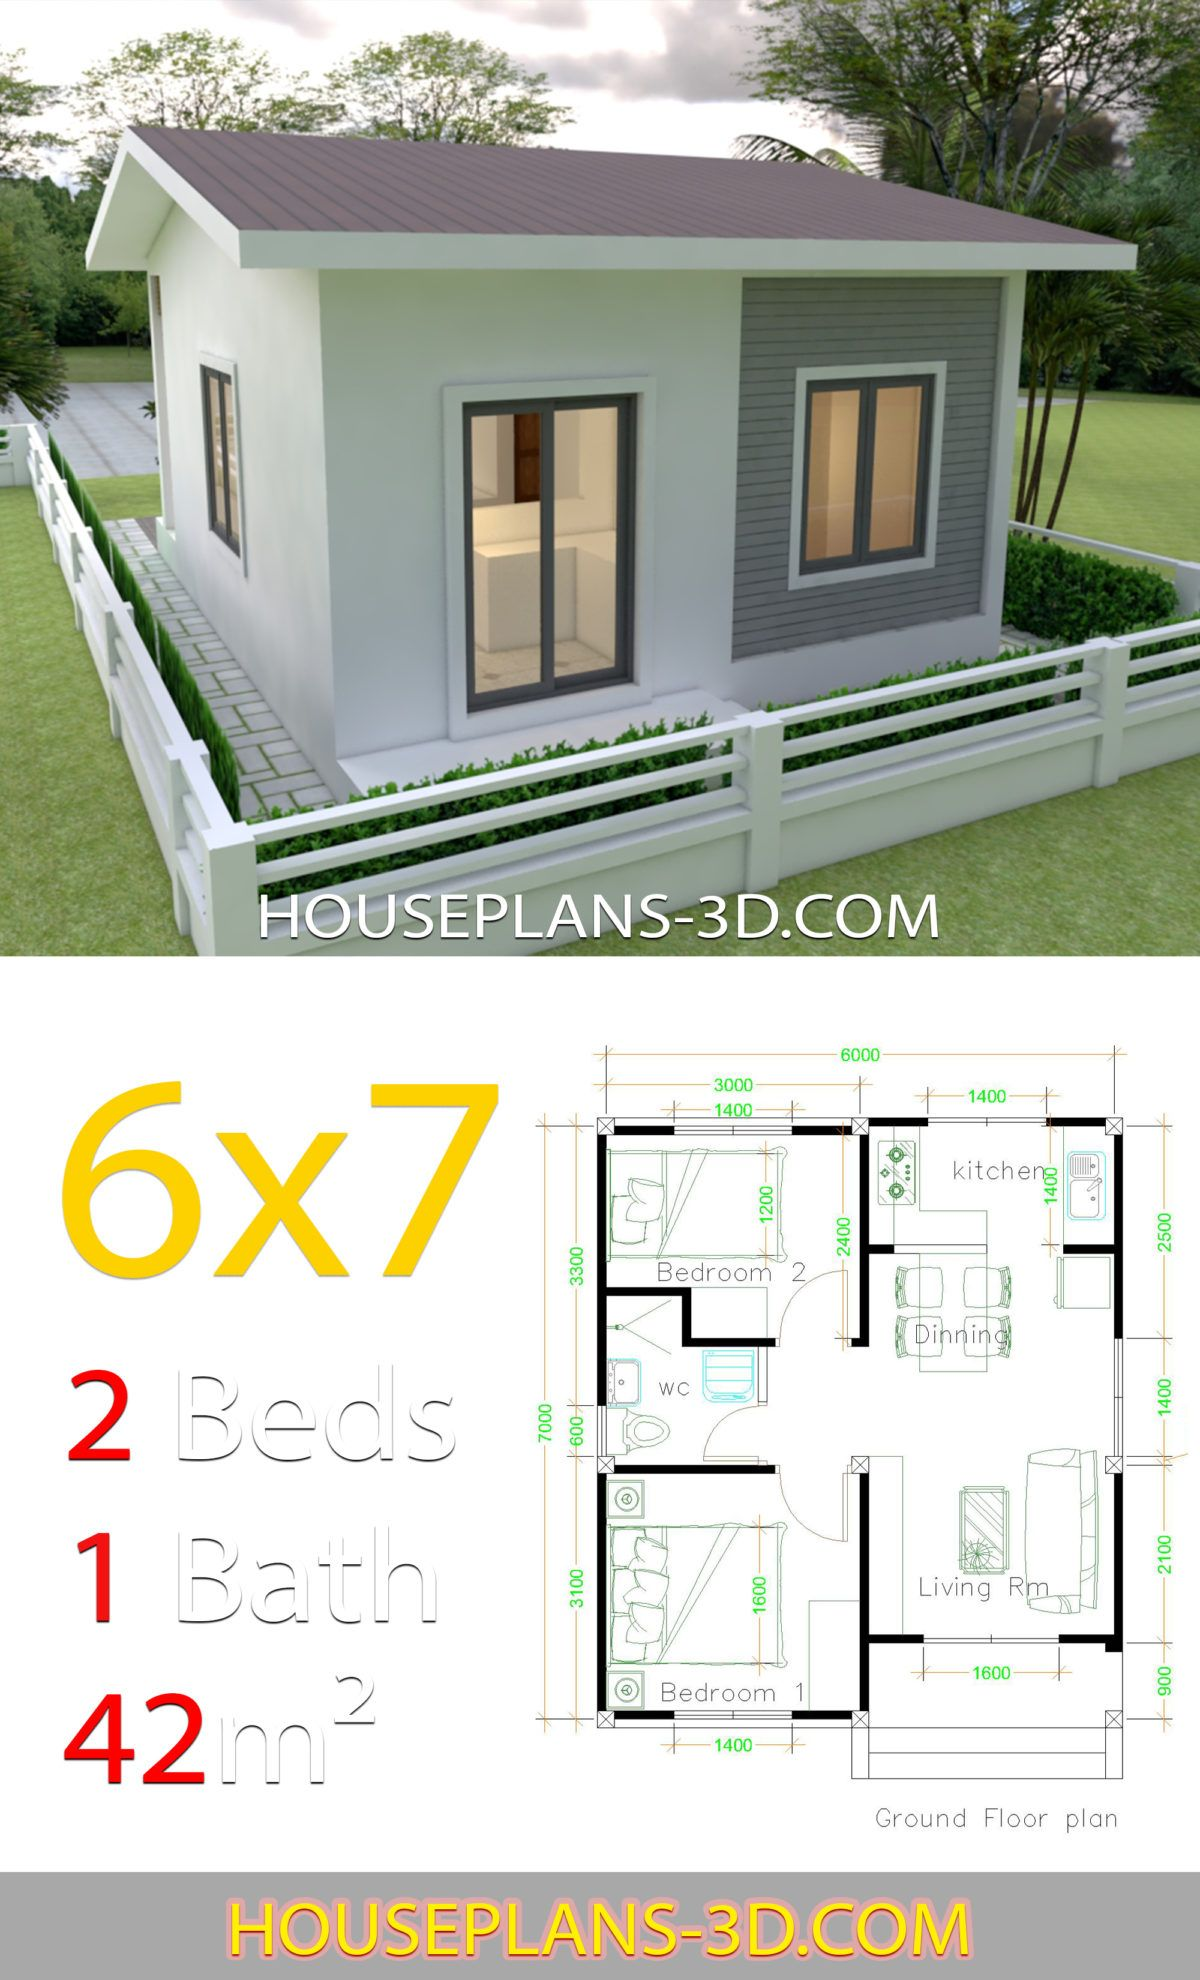 House Design 6x7 With 2 Bedrooms House Plans 3d In 2020 Tiny House Design Small House Architecture Small House Design